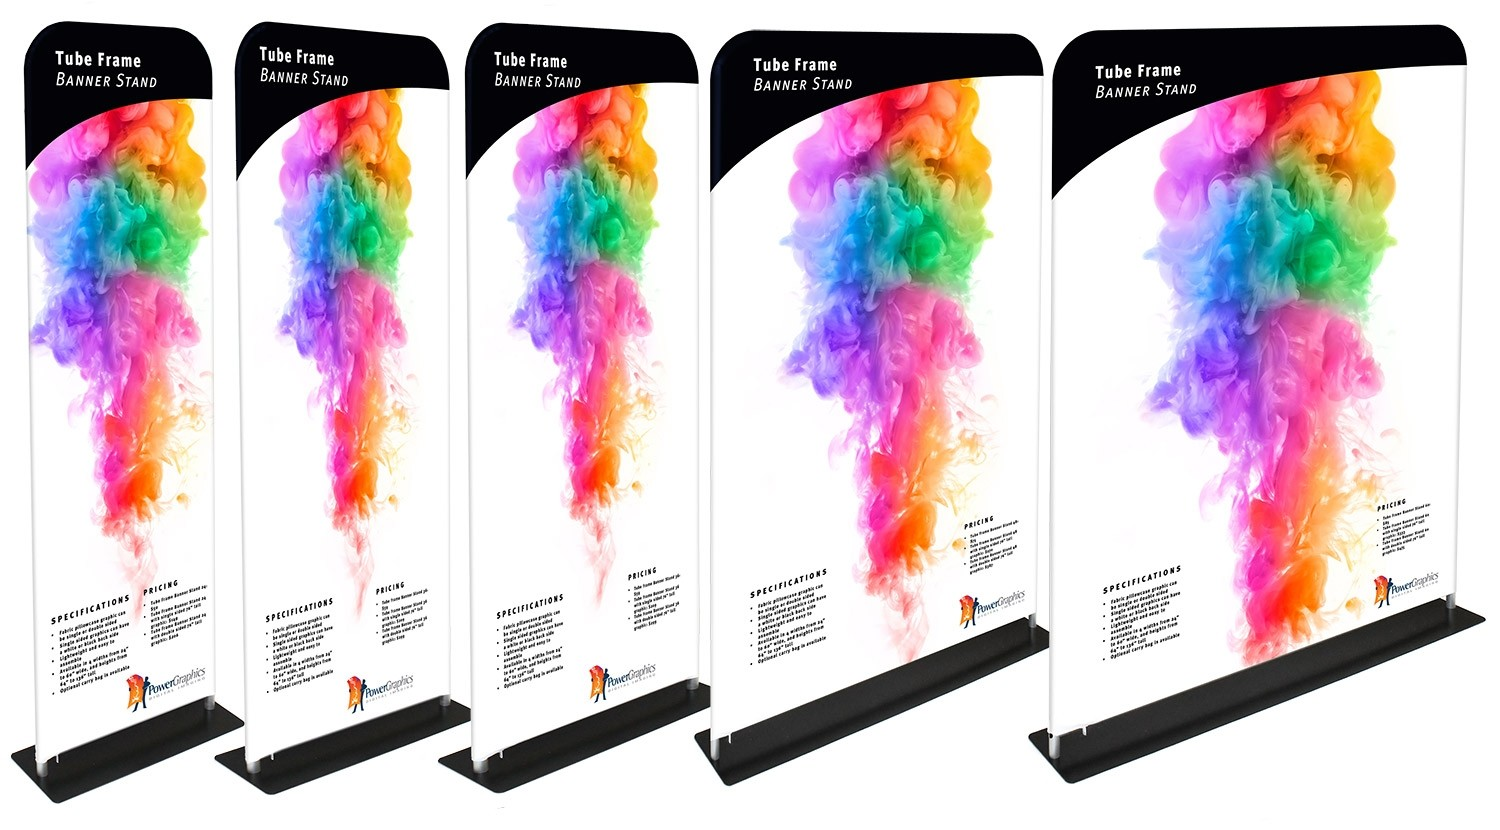 Tube Frame Banner Sizes